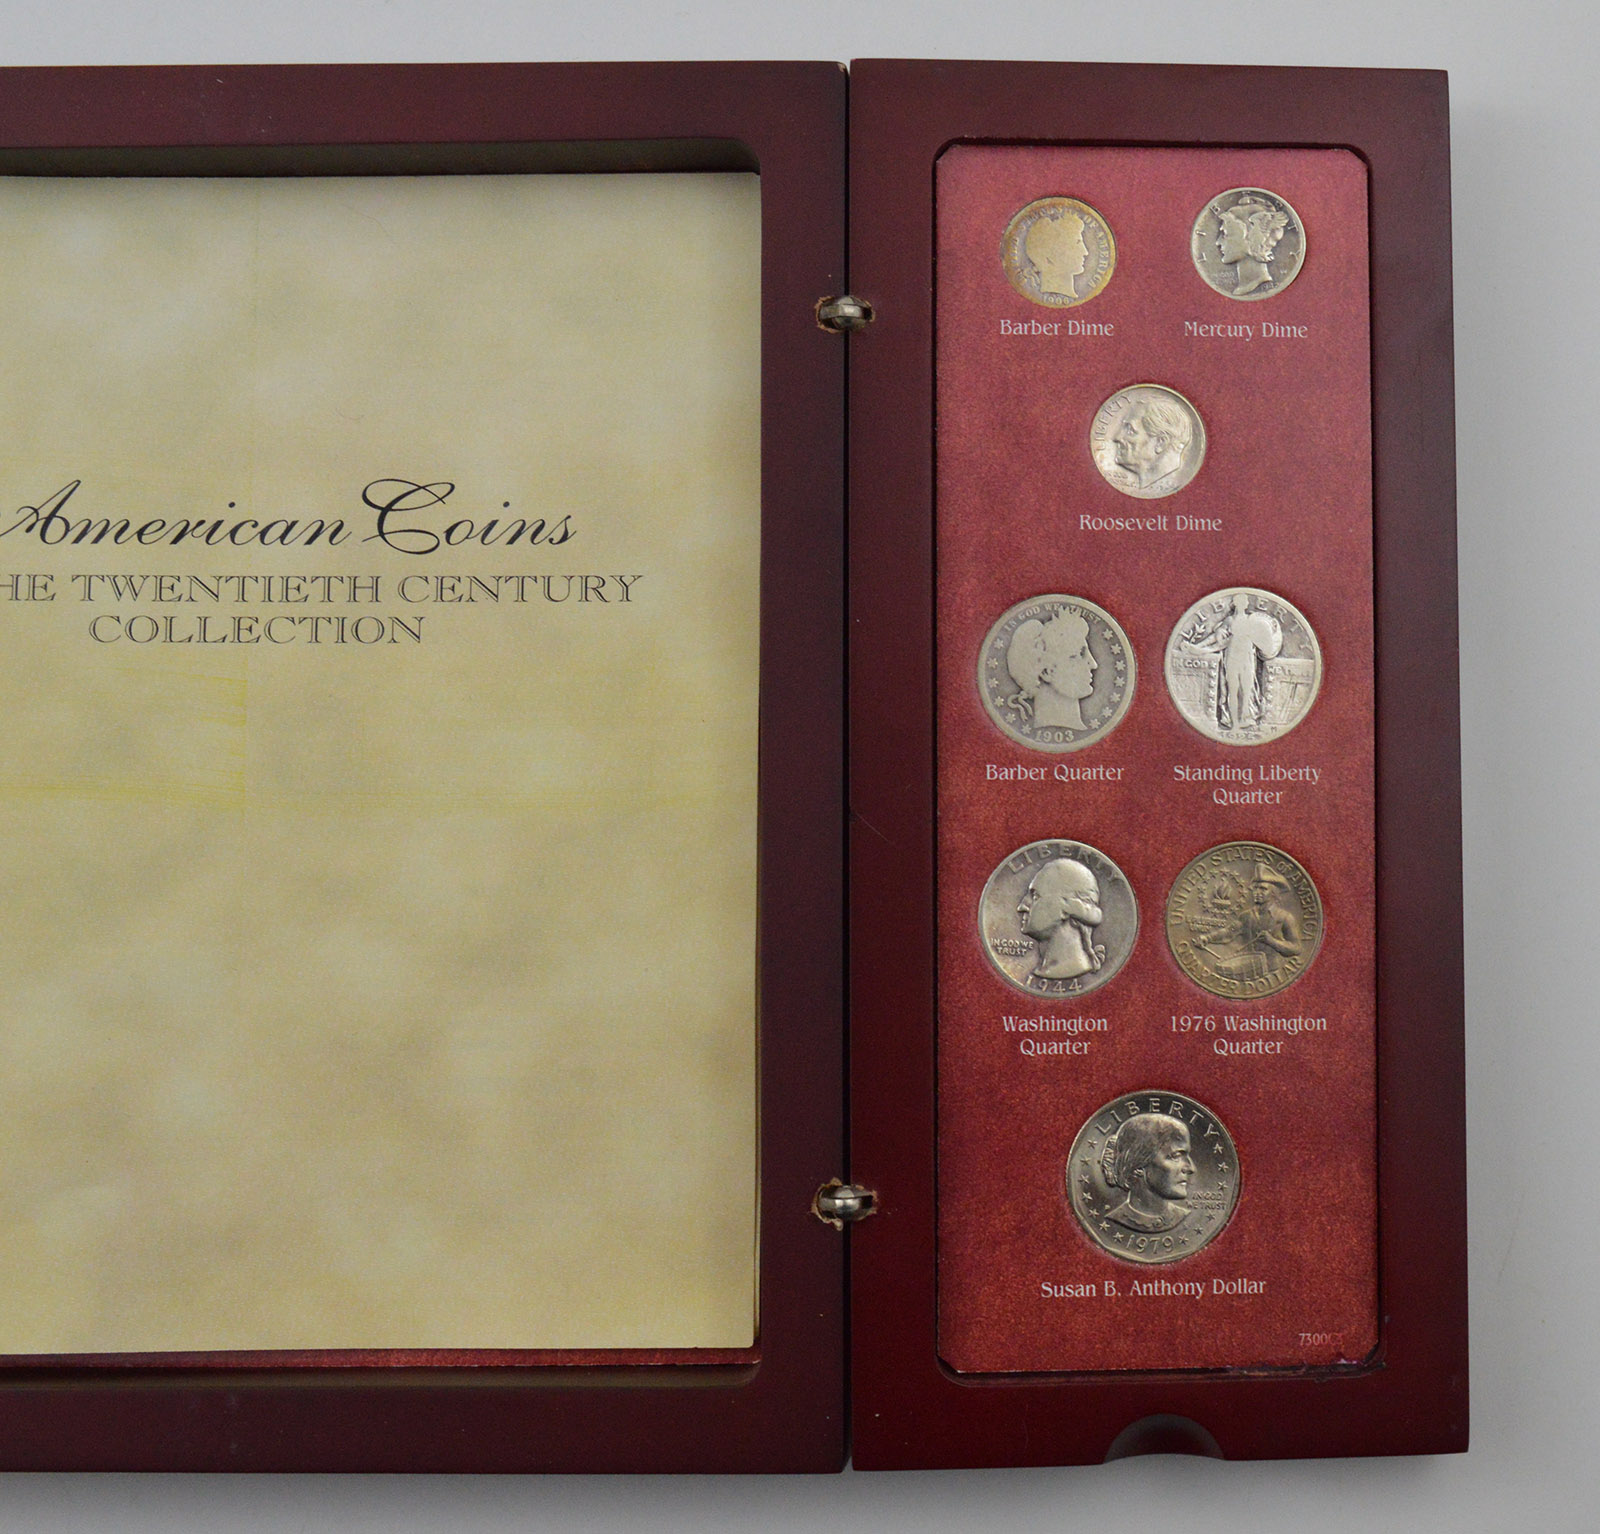 27 Coins - American Coins of the 20th Century Type Set Wood